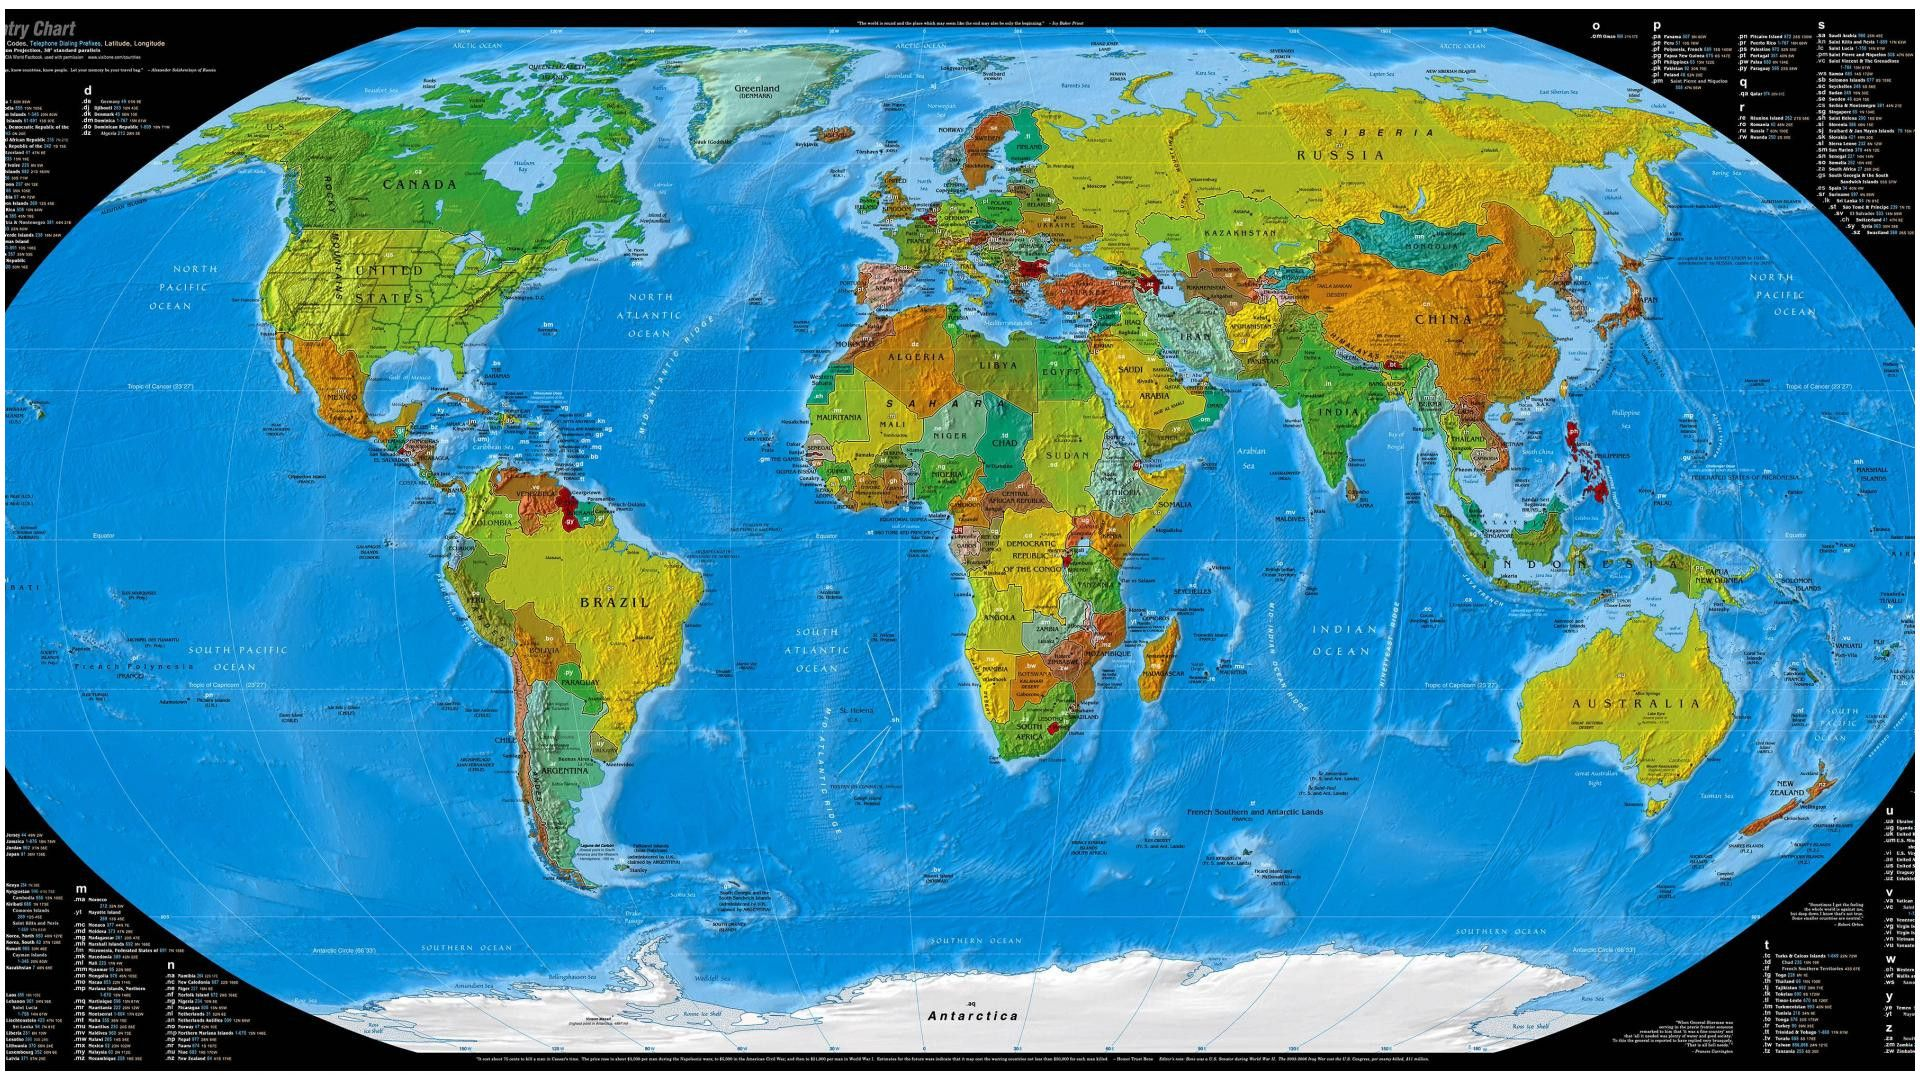 World Map With Hd World Map Detailed Hd High Quality Map Of The World Hdworld Map World Map Pc Wallpaper Map Of In 2020 World Map Wallpaper Map Pictures Map Wallpaper